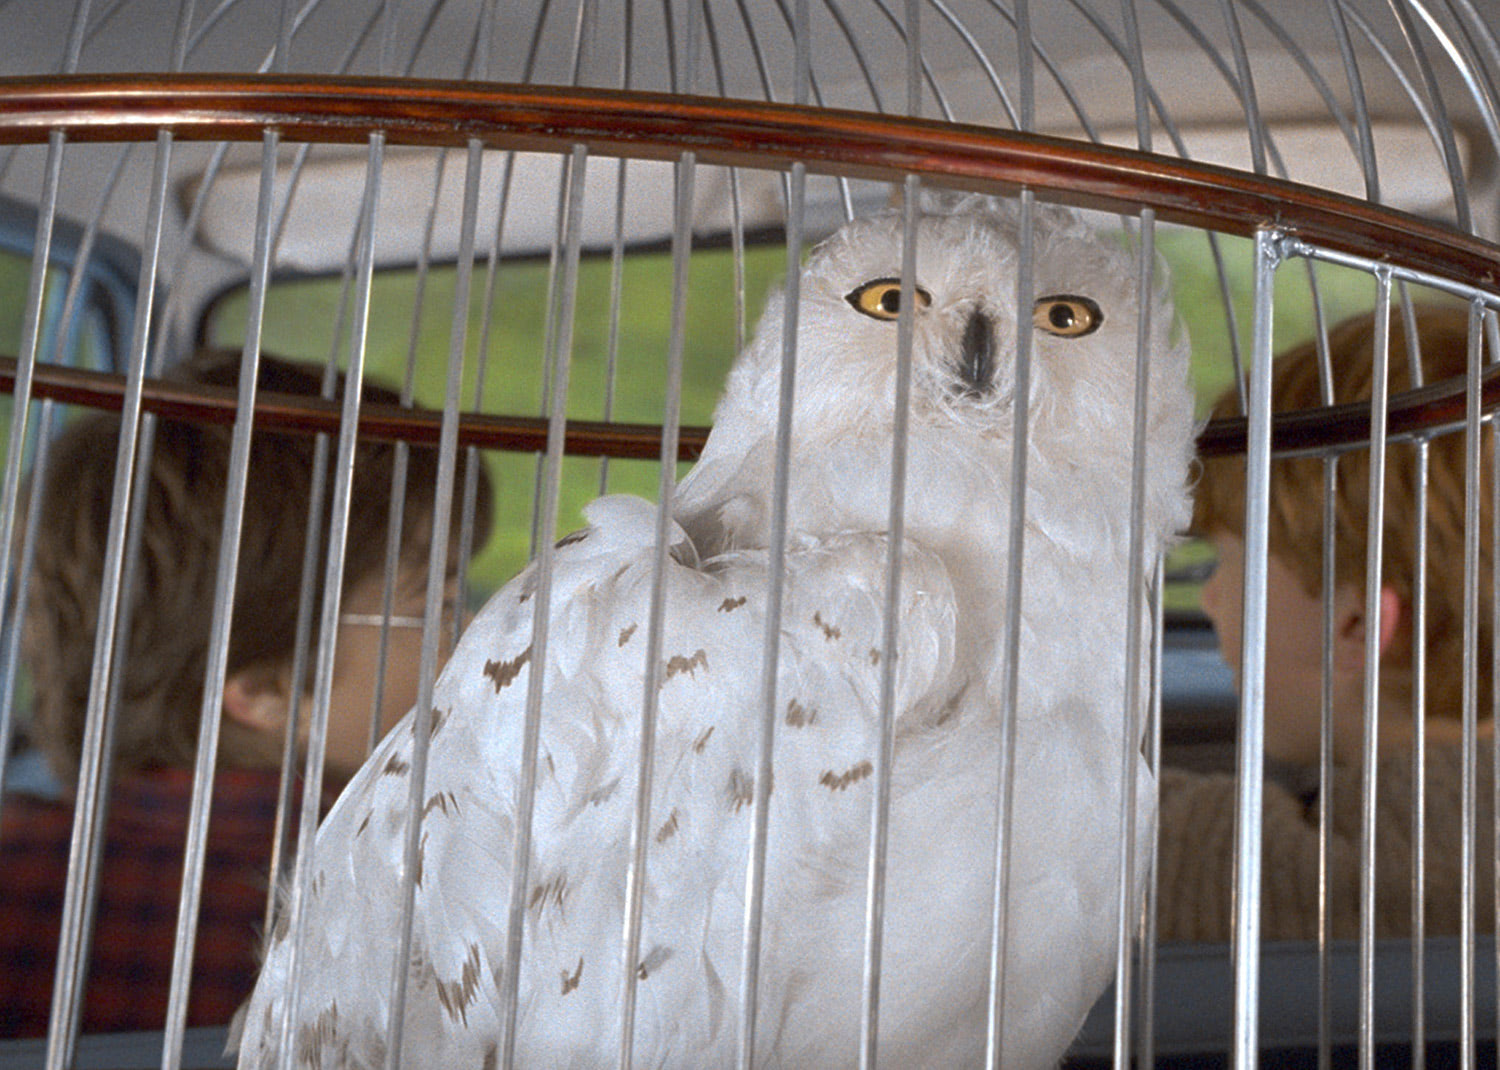 Hedwig in the Ford Anglia